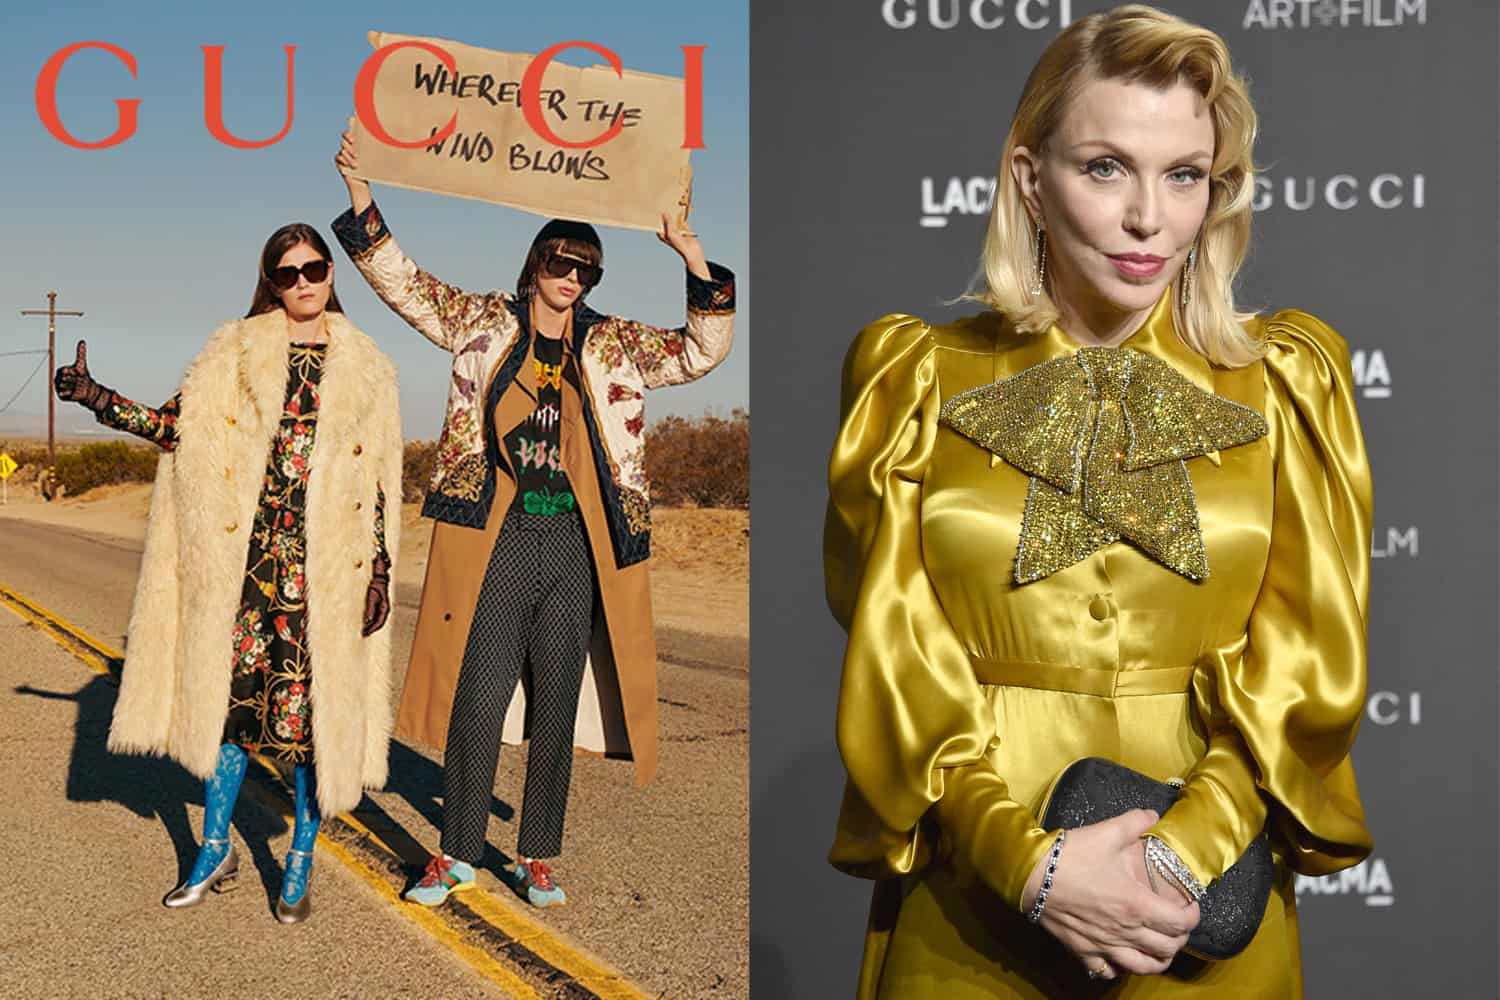 Gucci Goes Carbon Neutral, Courtney Love's Sackler Feud Continues to Escalate